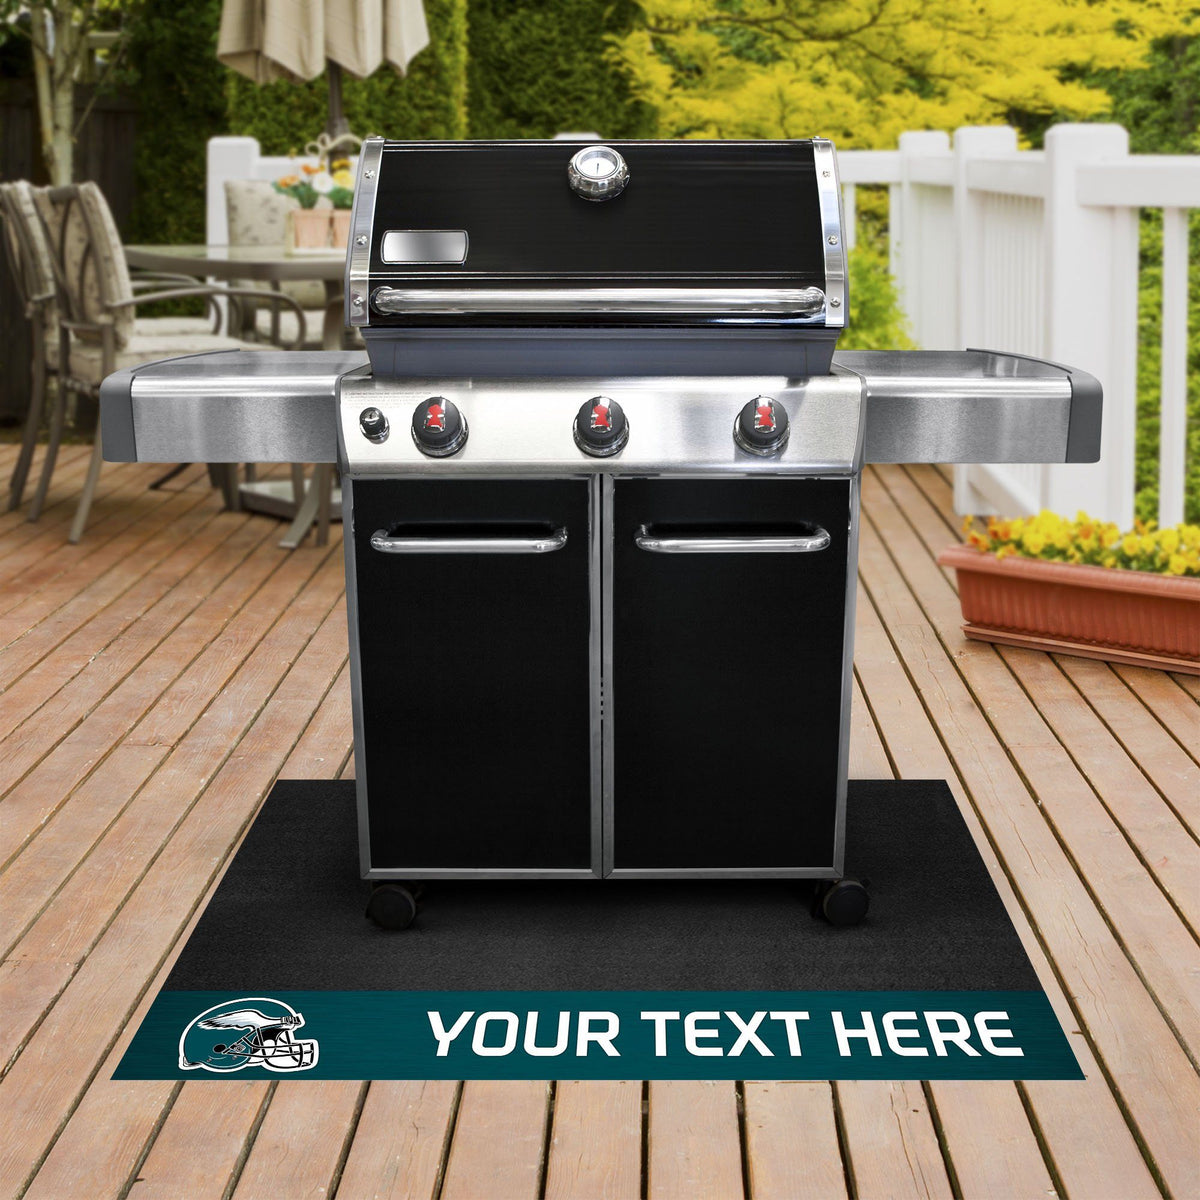 NFL Personalized Grill Mat Personalized Grill Mat Fan Mats Philadelphia Eagles